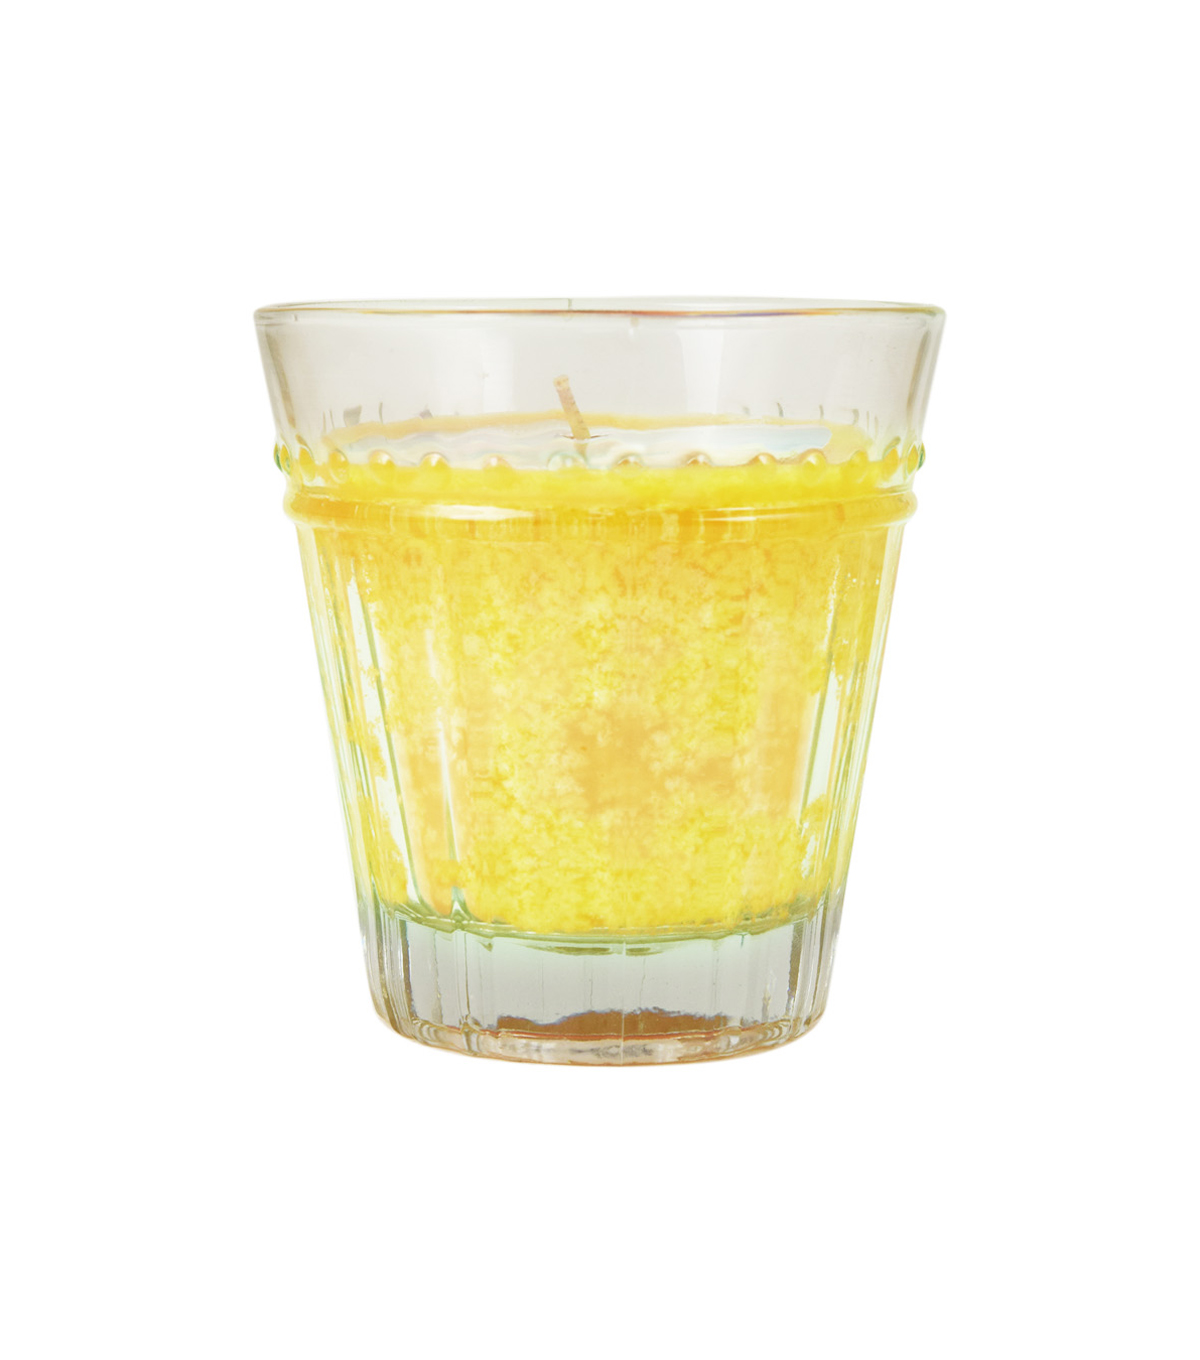 Hudson 43™ Candle & Light Collection 7oz Glass Fill Lemon Sugar Cookie